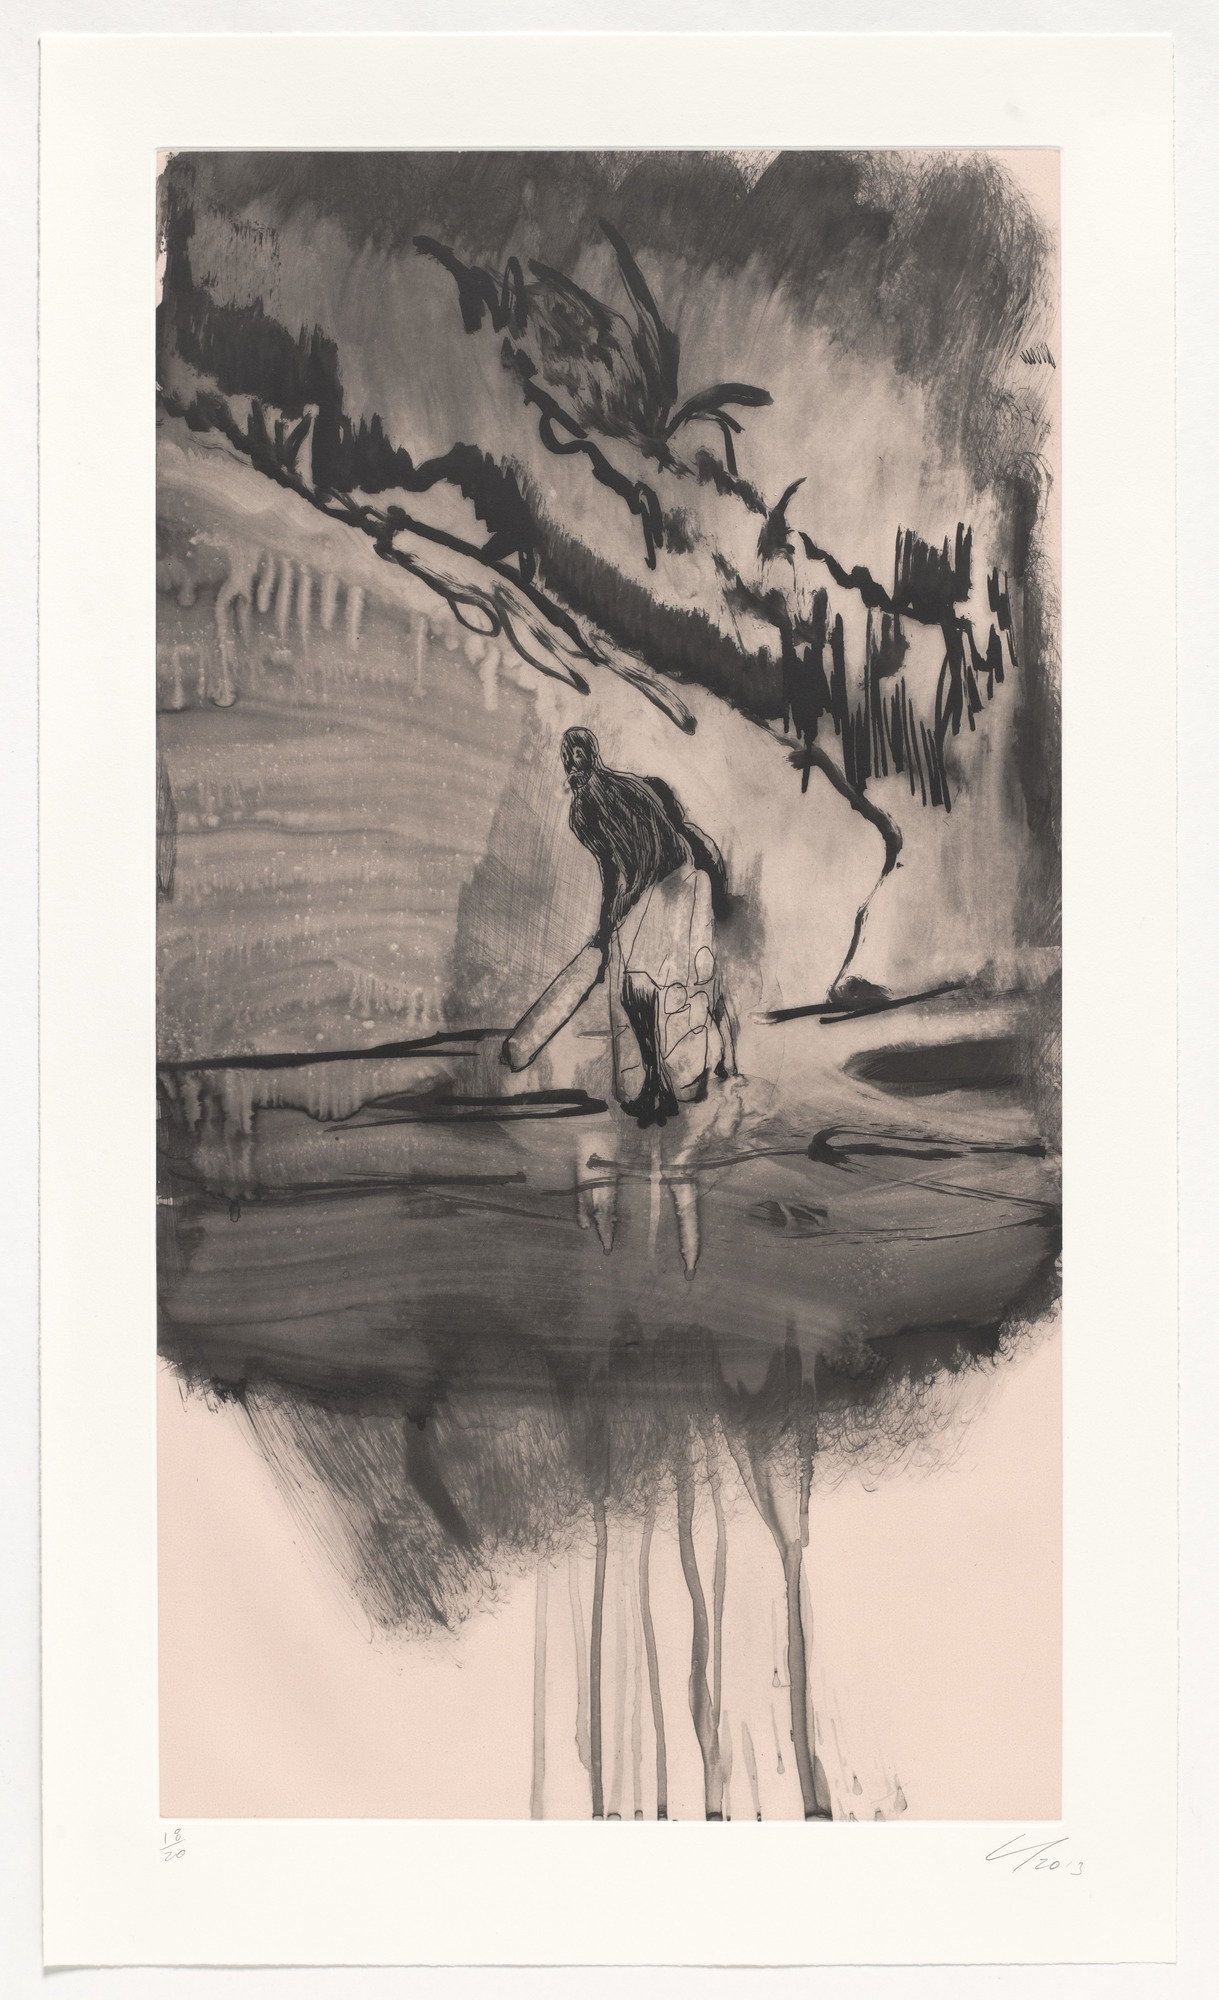 "Peter Doig. Untitled, Large Cricket Player. 2013. Etching with aquatint, and screenprint. plate: 28 3/4 x 15 9/16"" (73 x 39.5 cm); sheet: 33 1/8 x 19 1/2"" (84.2 x 49.5 cm). Committee on Prints and Illustrated Books Fund. 49.2014.1. © 2016 Peter Doig. Untitled. Drawings and Prints."